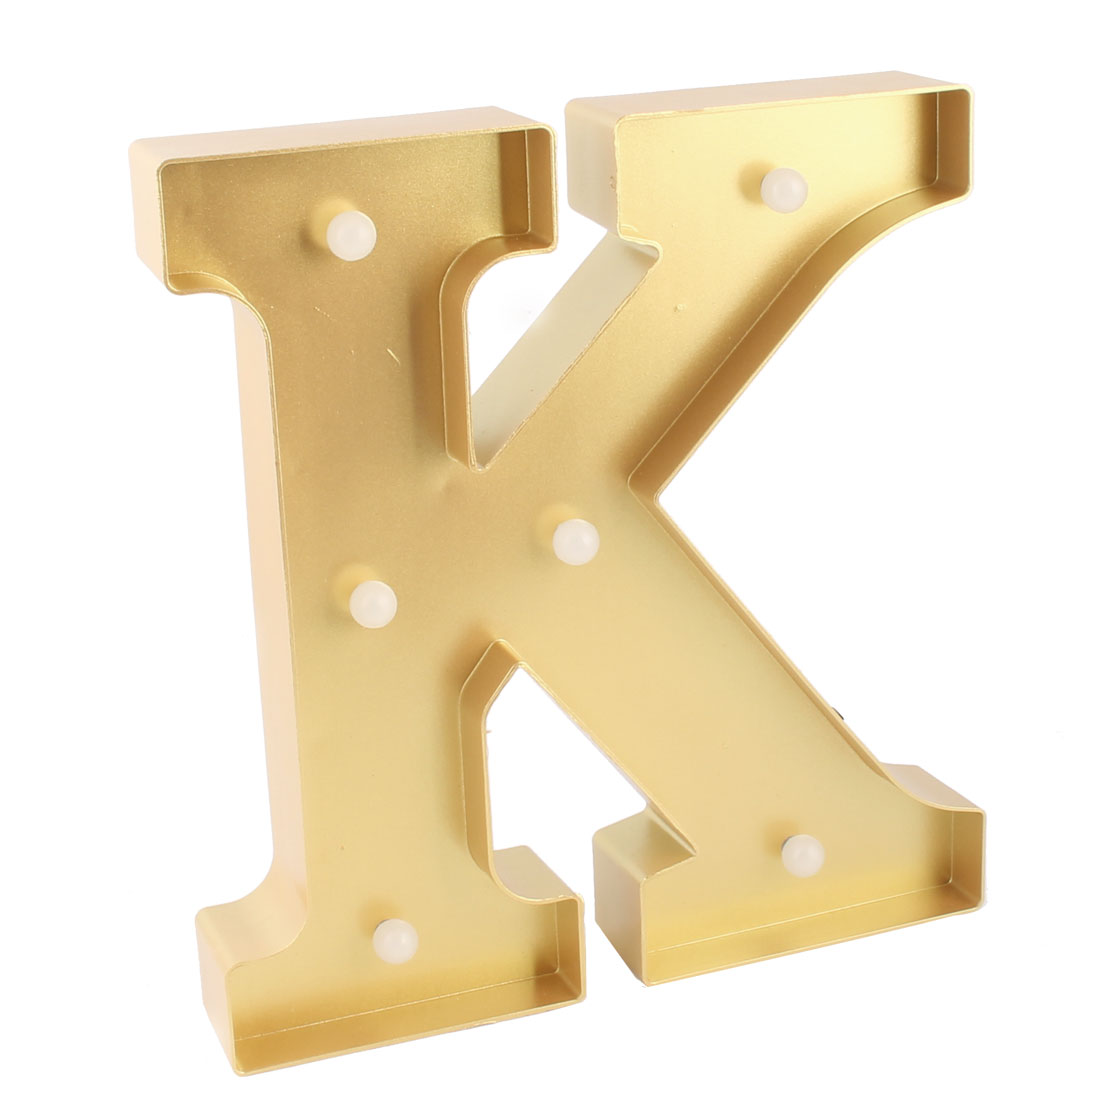 Livingroom Plastic Decor English K Letter Alphabet DIY Hanging LED Light Gold Tone